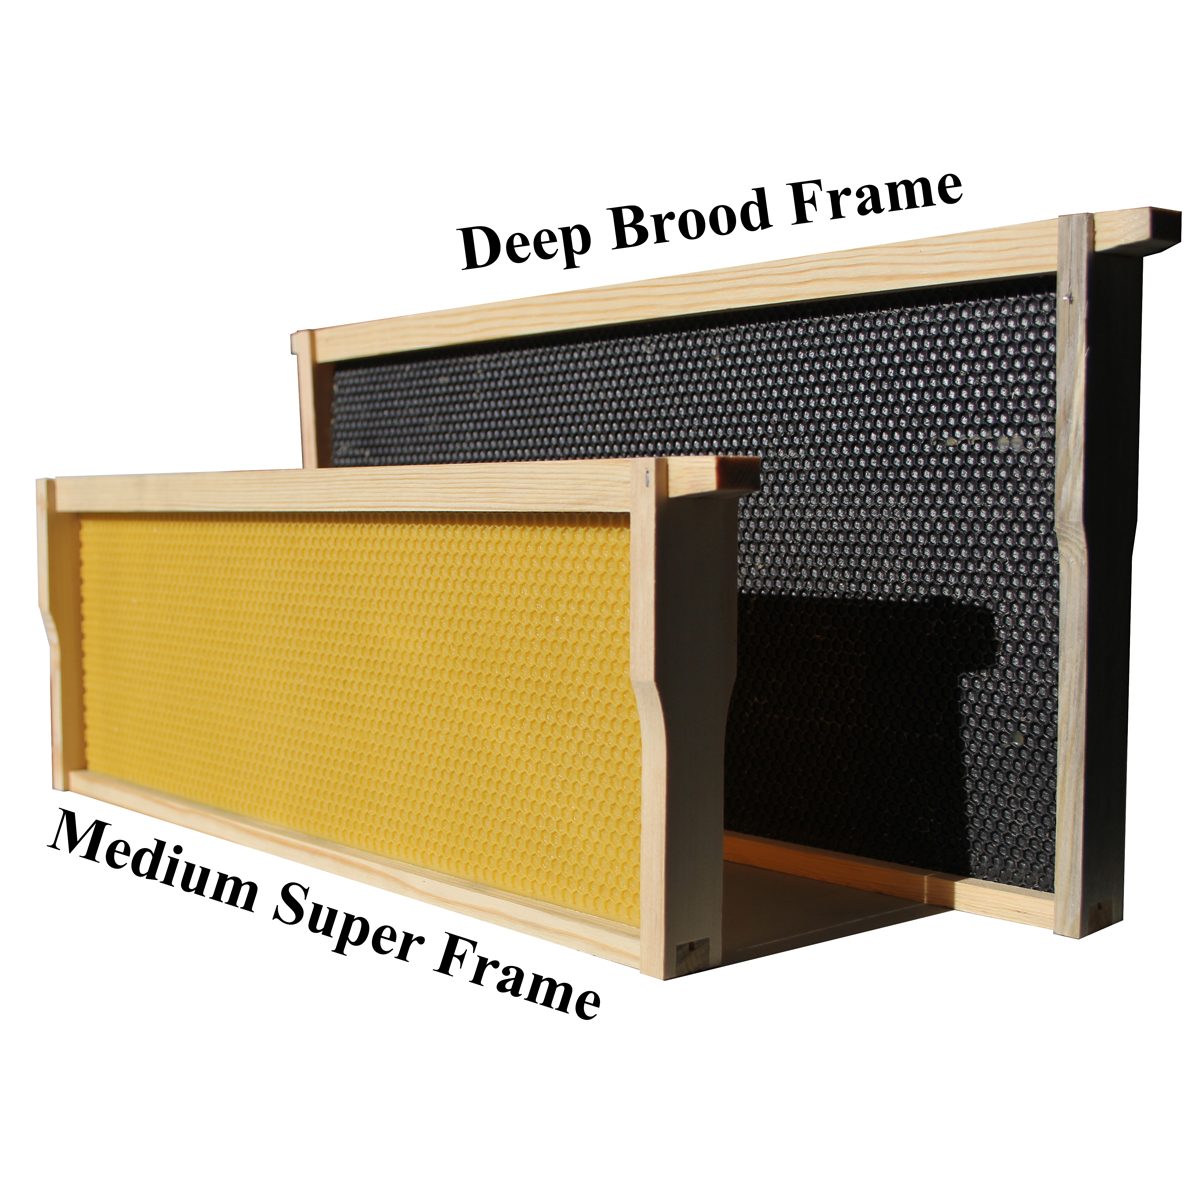 Medium Frame With Yellow Foundation Standing Next To A Deep Frame With Black Foundation. The Two Are Different Sizes